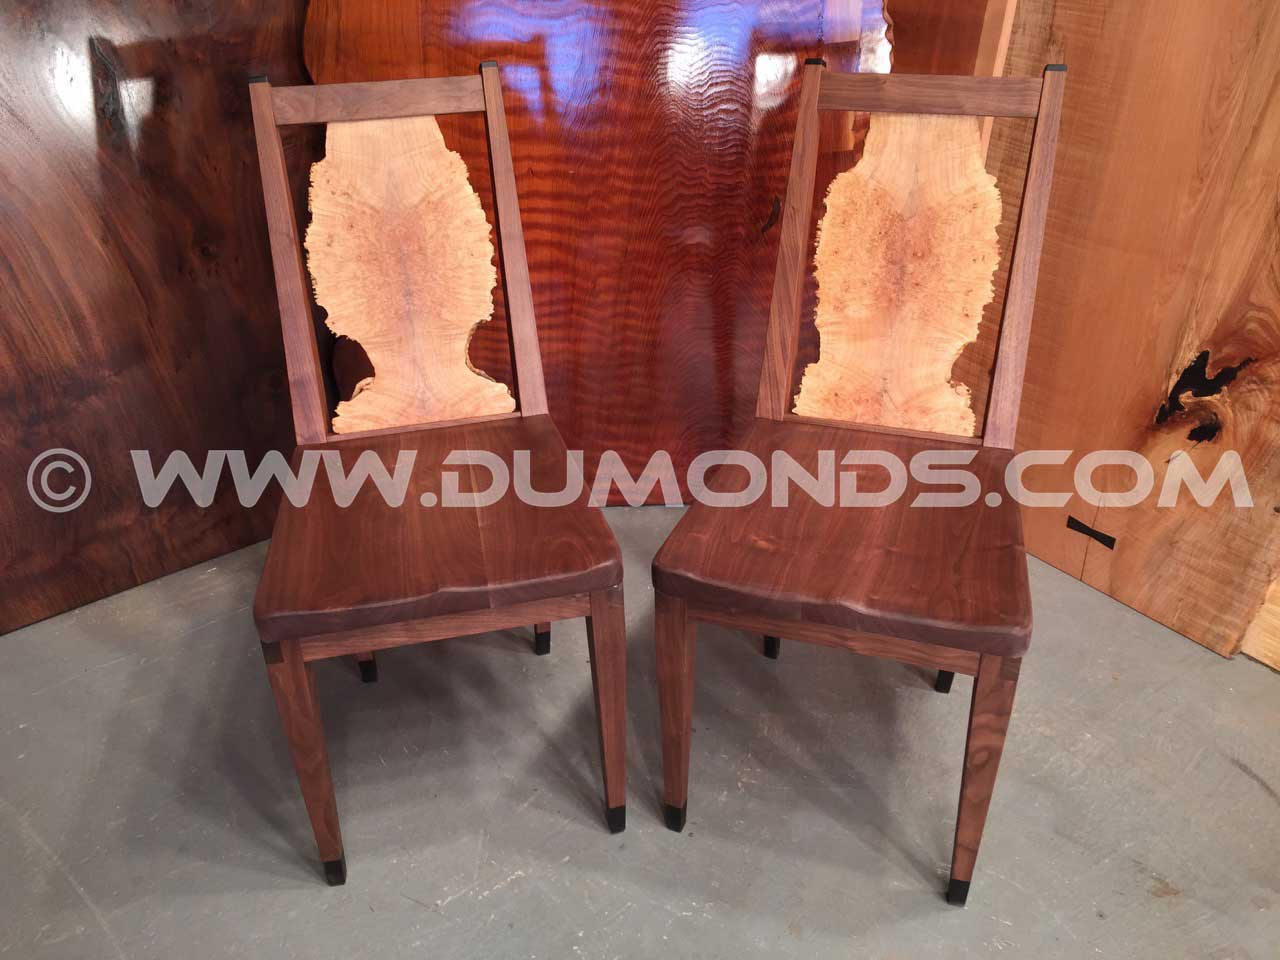 Handmade Walnut Rustic Chair